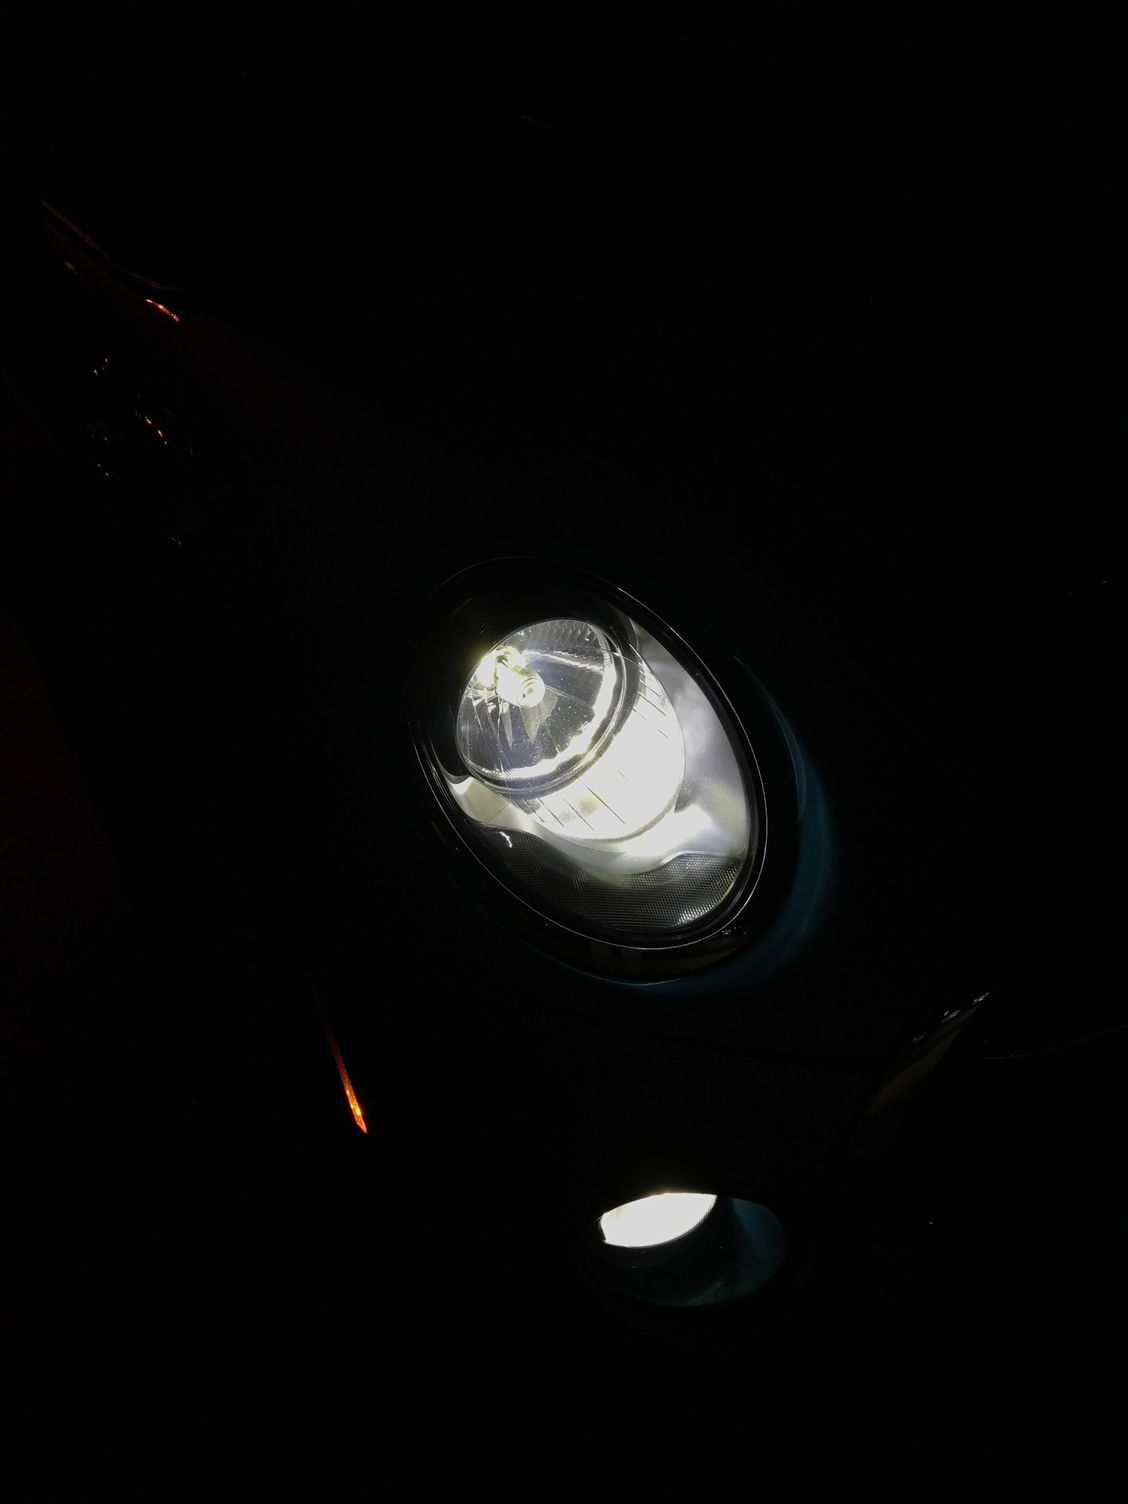 F56 Headlamp Fog Lamp And Drl Replacement North American Motoring Ampamp Foglamp 3s H11 Error Free